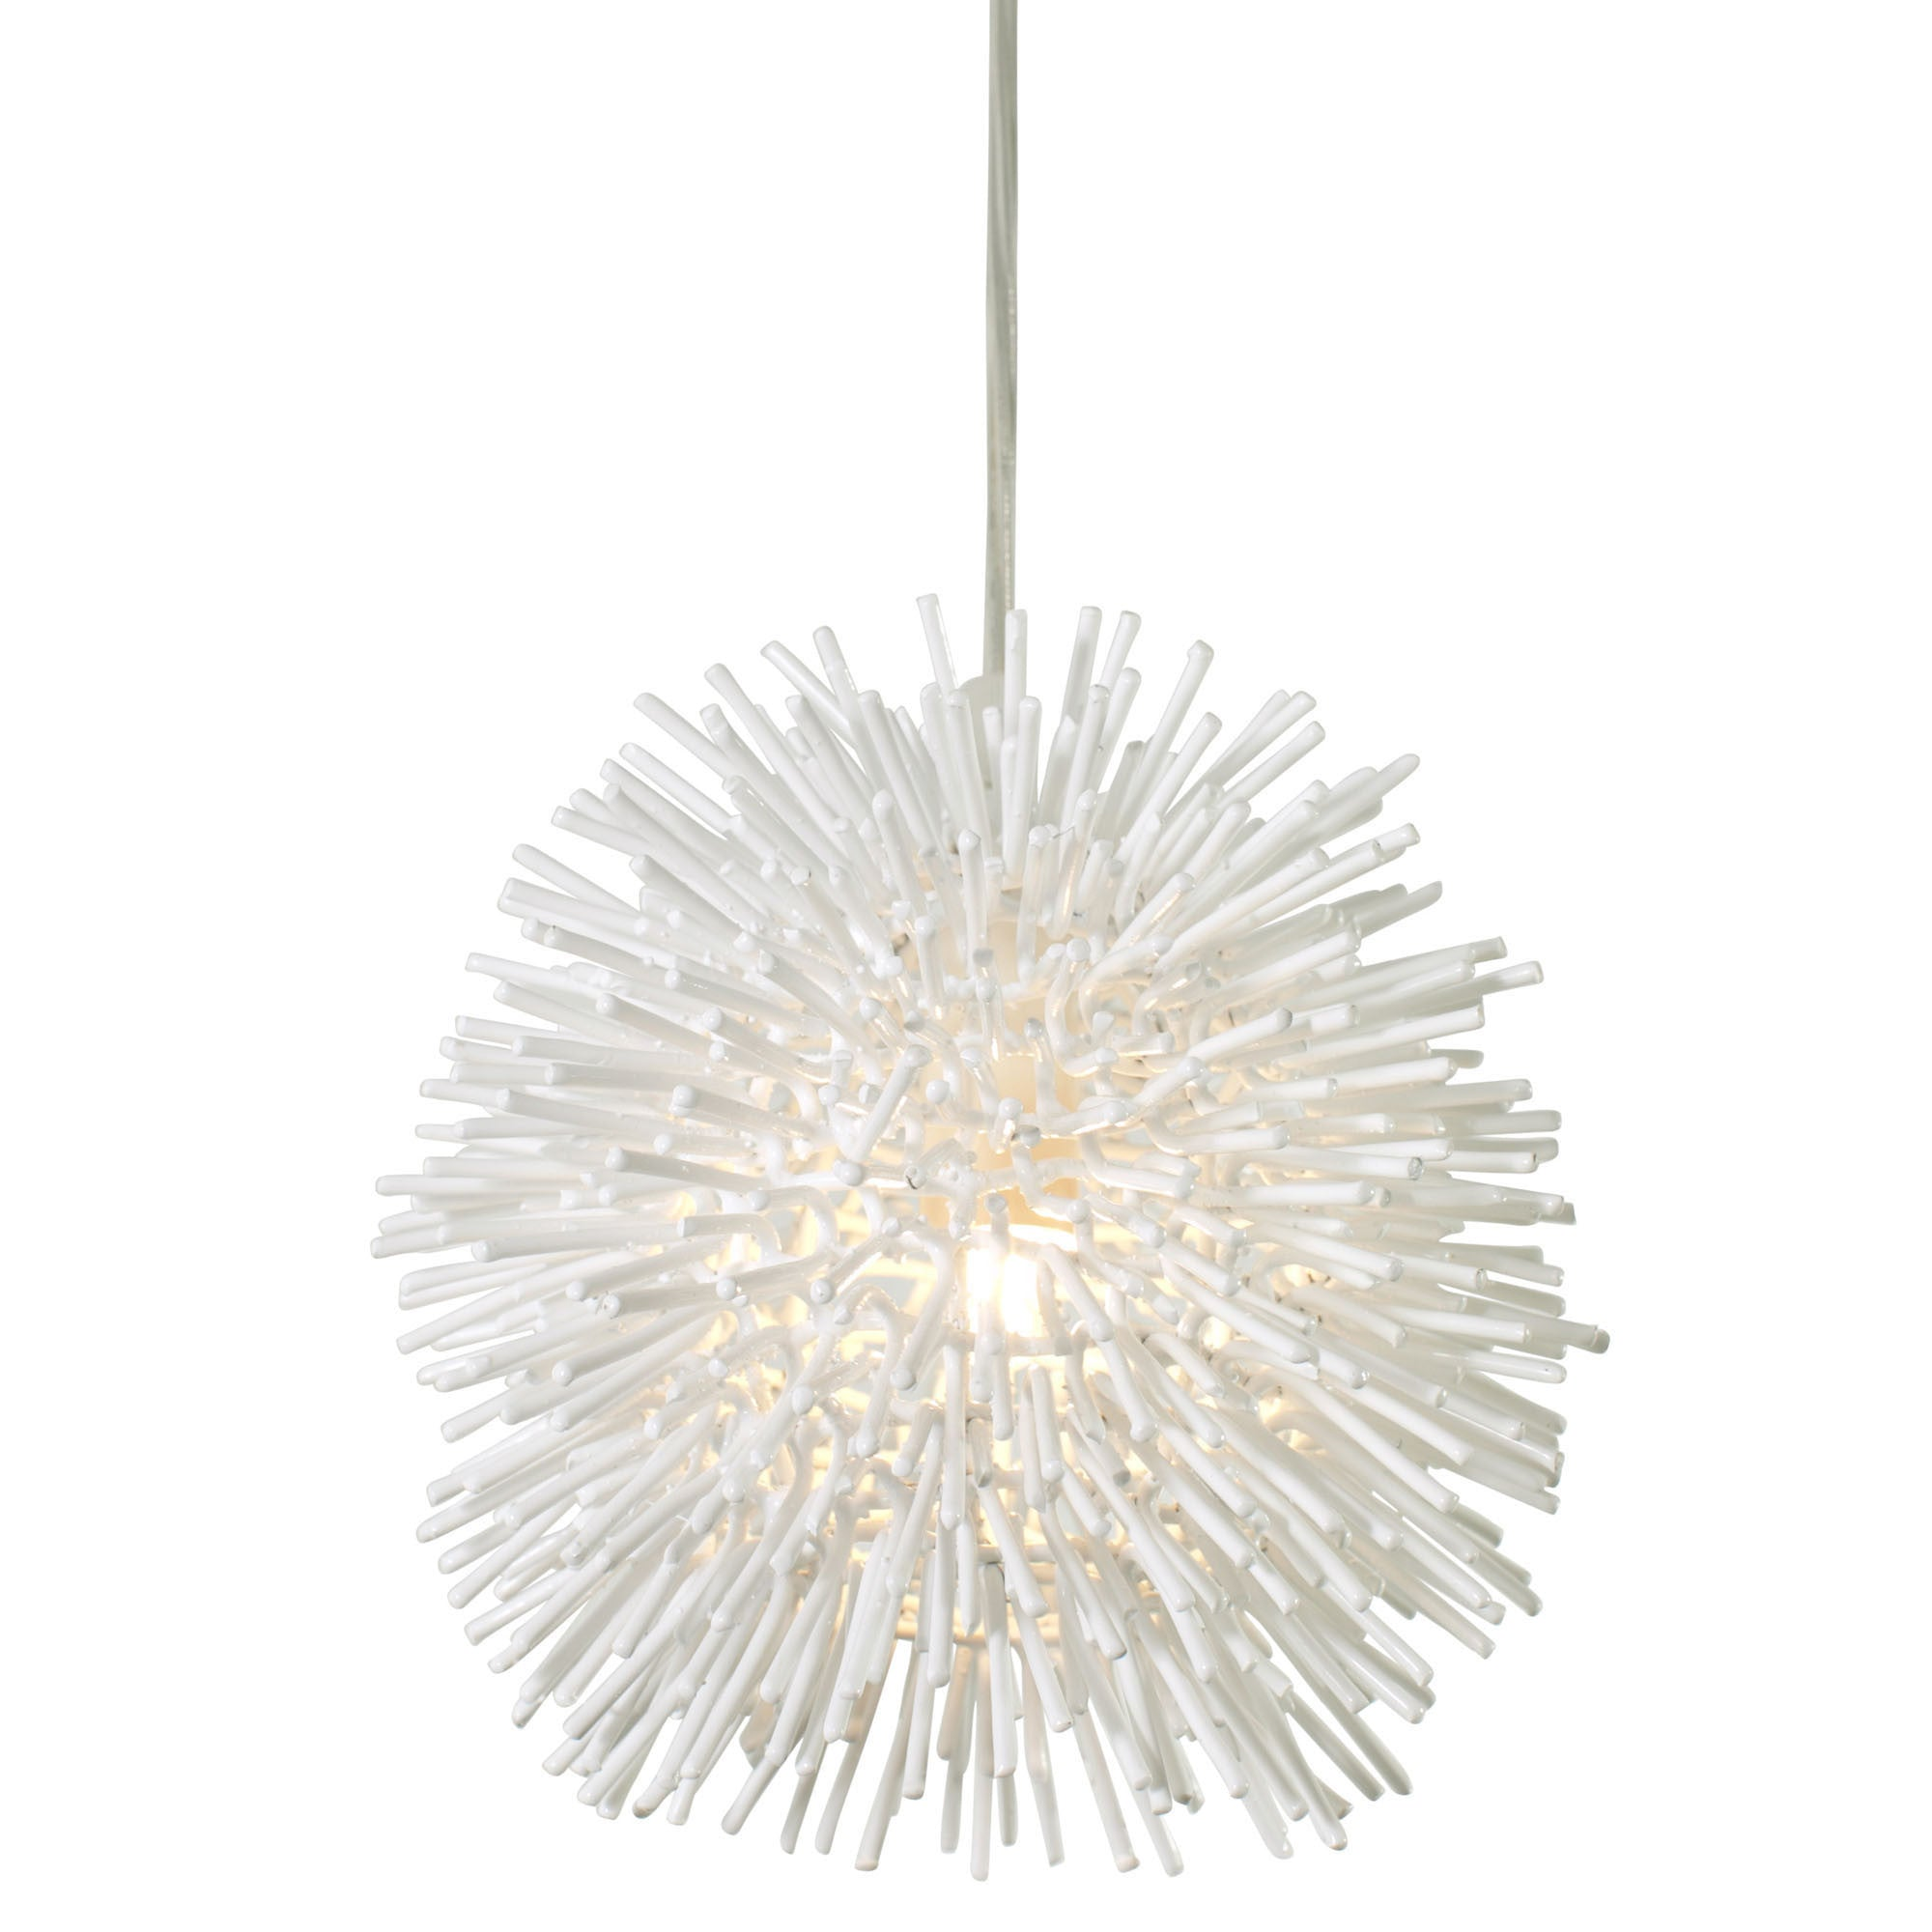 urchin starburst silver chrome elk lighting light pin chandelier polished